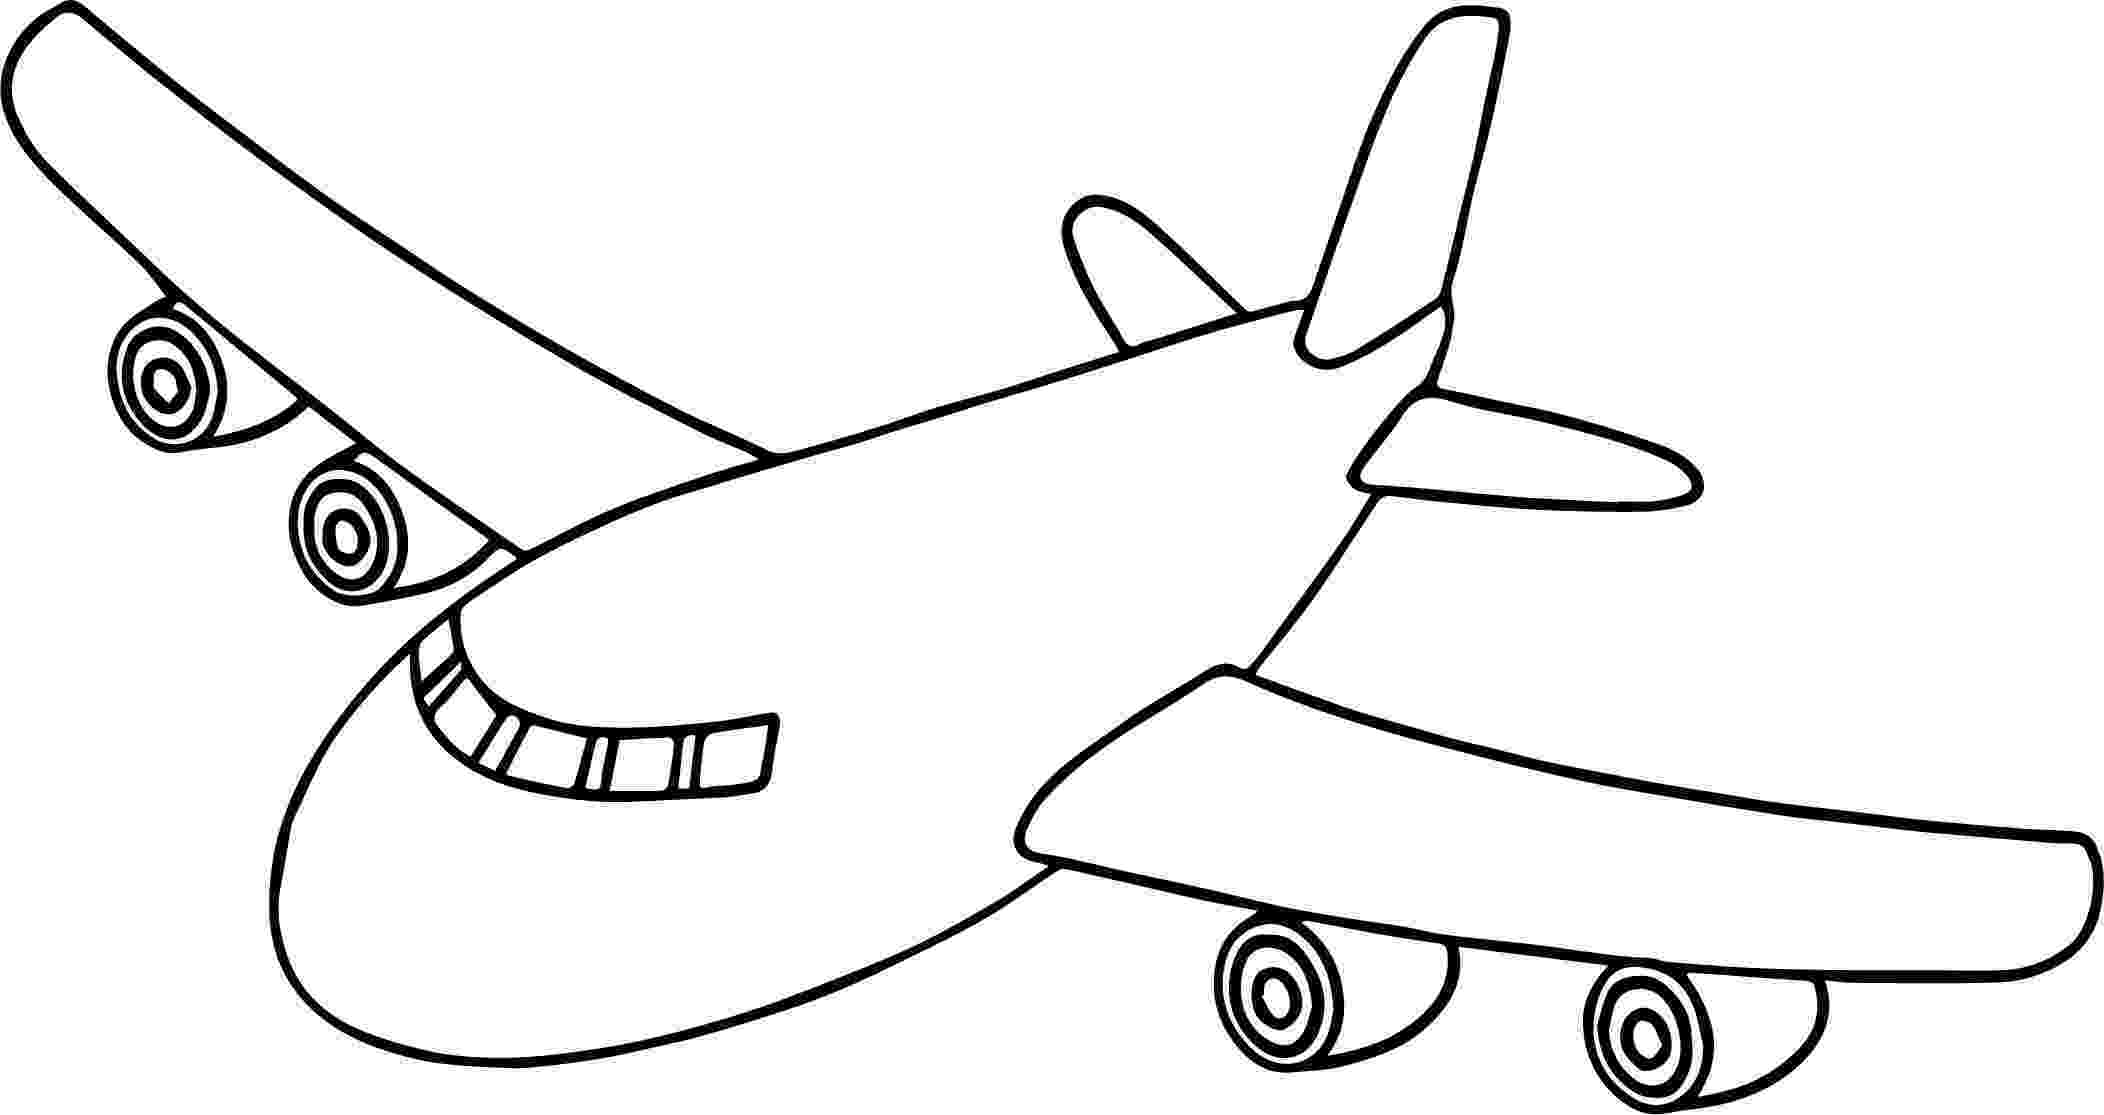 picture of an airplane to color front airplane coloring page airplane coloring pages picture to color an airplane of